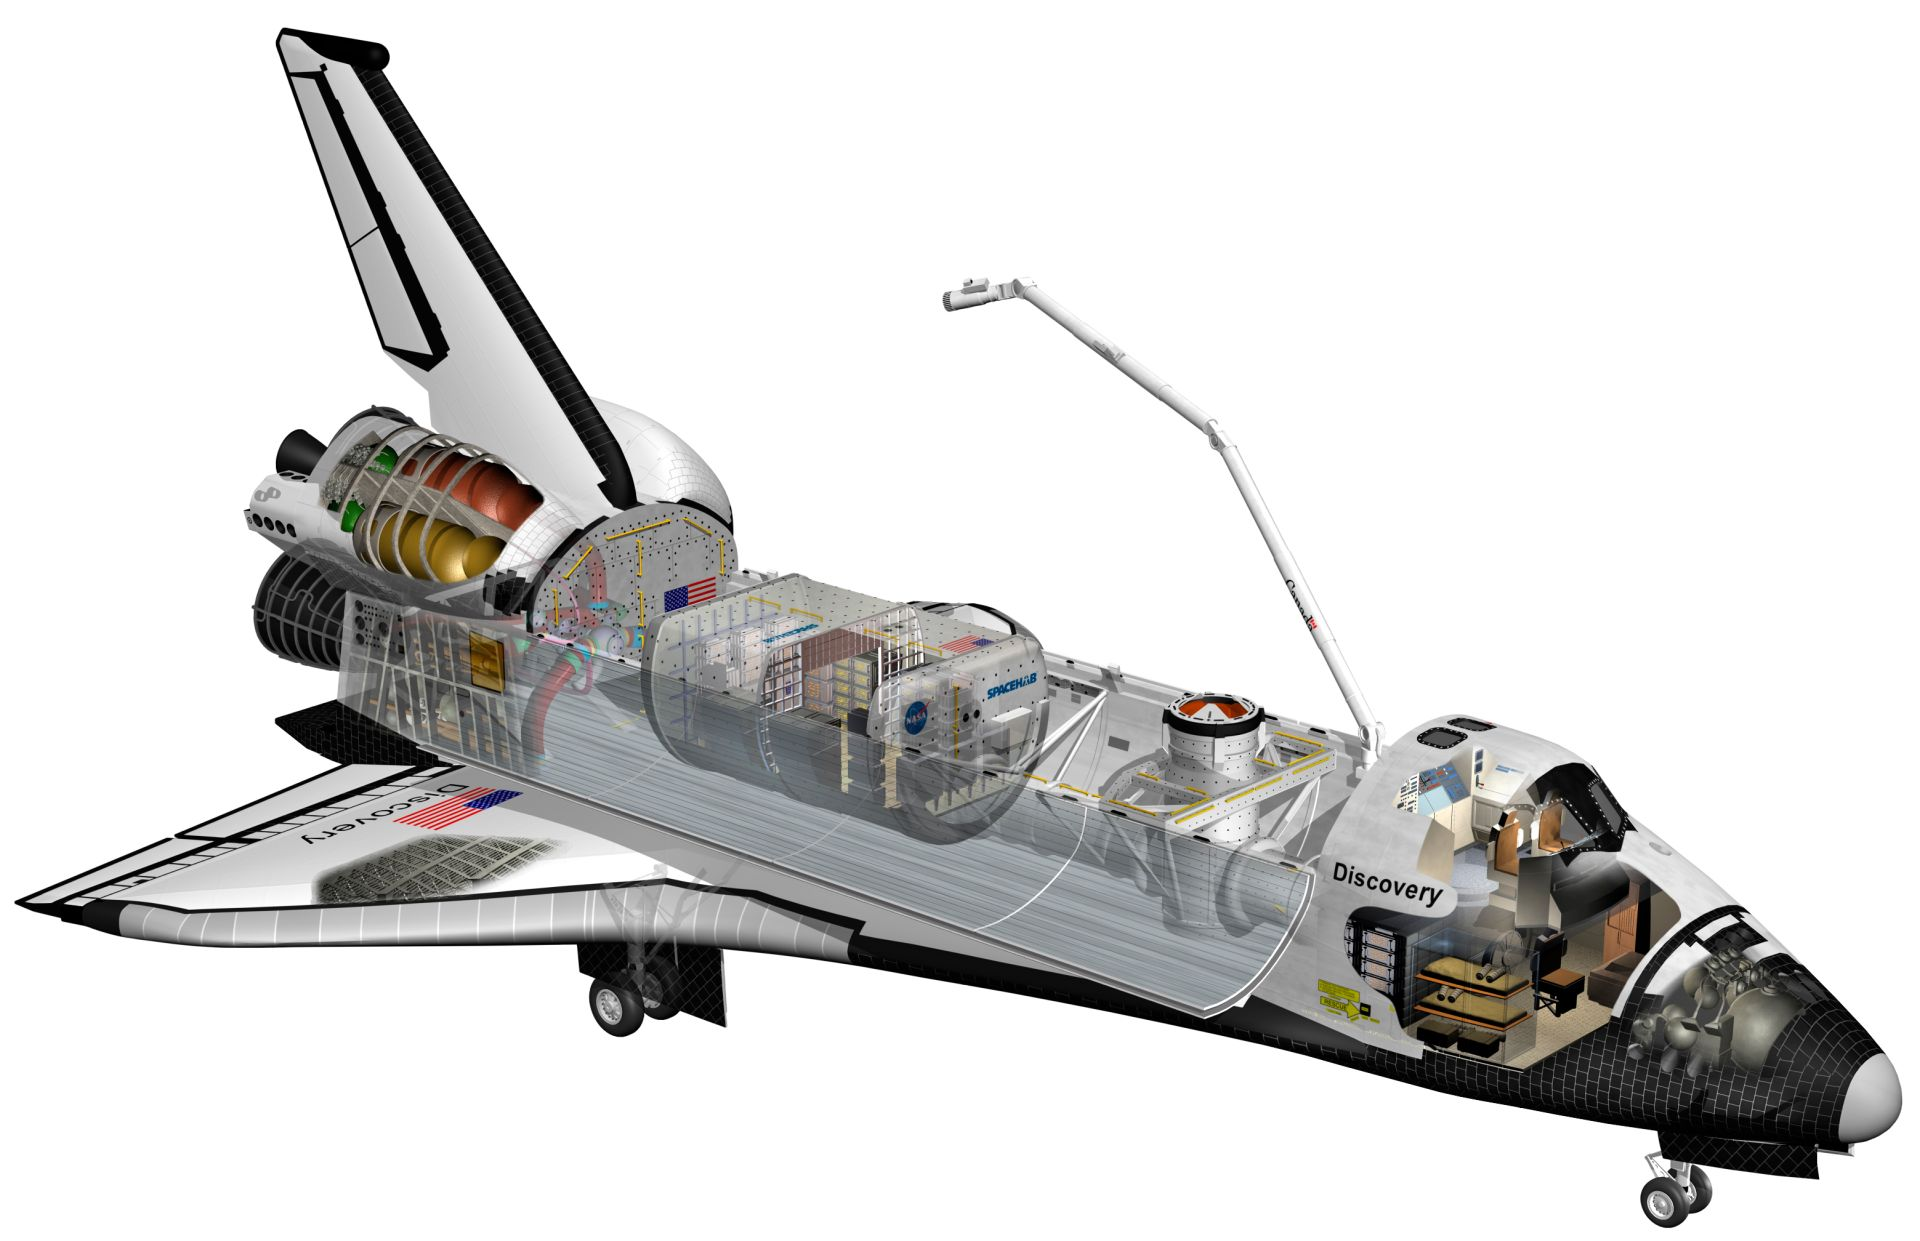 Space Shuttle Orbiter   What Is An Orbiter?   DK Find Out